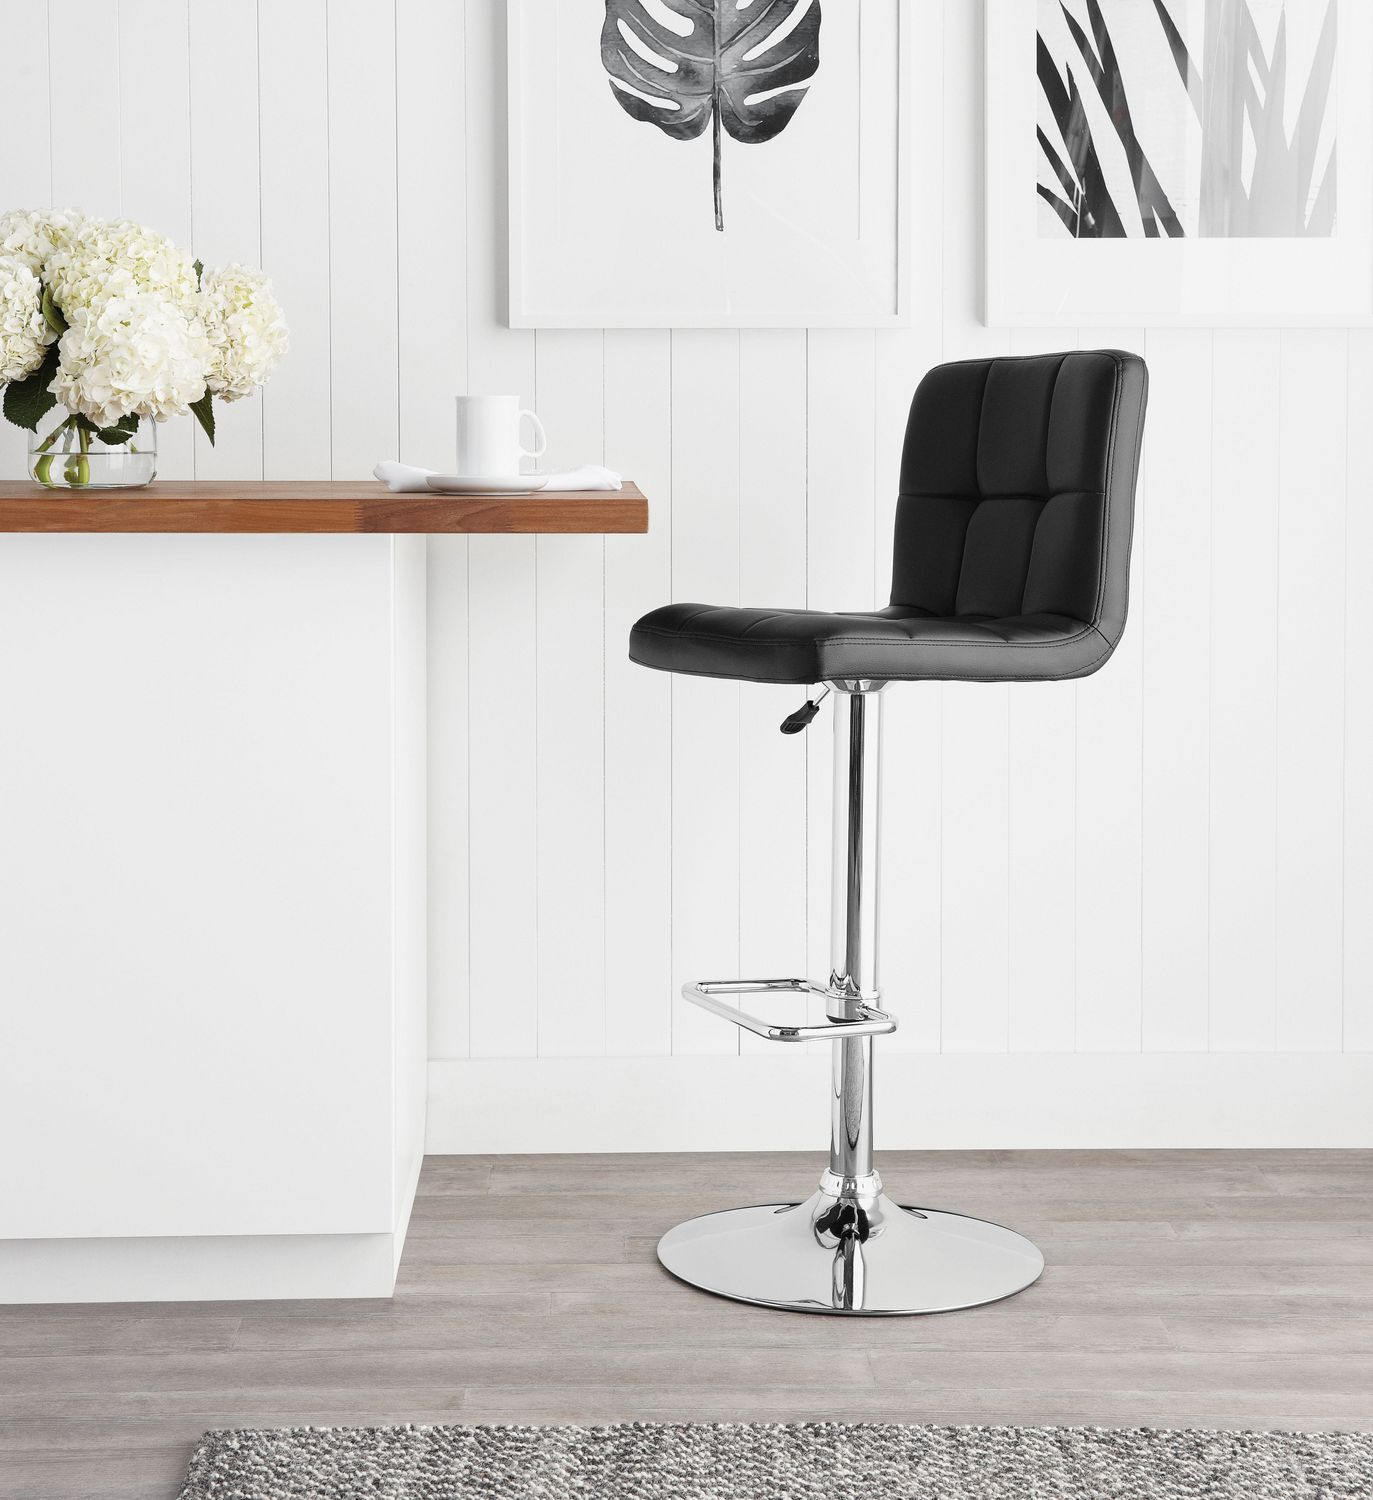 buy bar stools online walmart hometrends quilted swivel bar stool